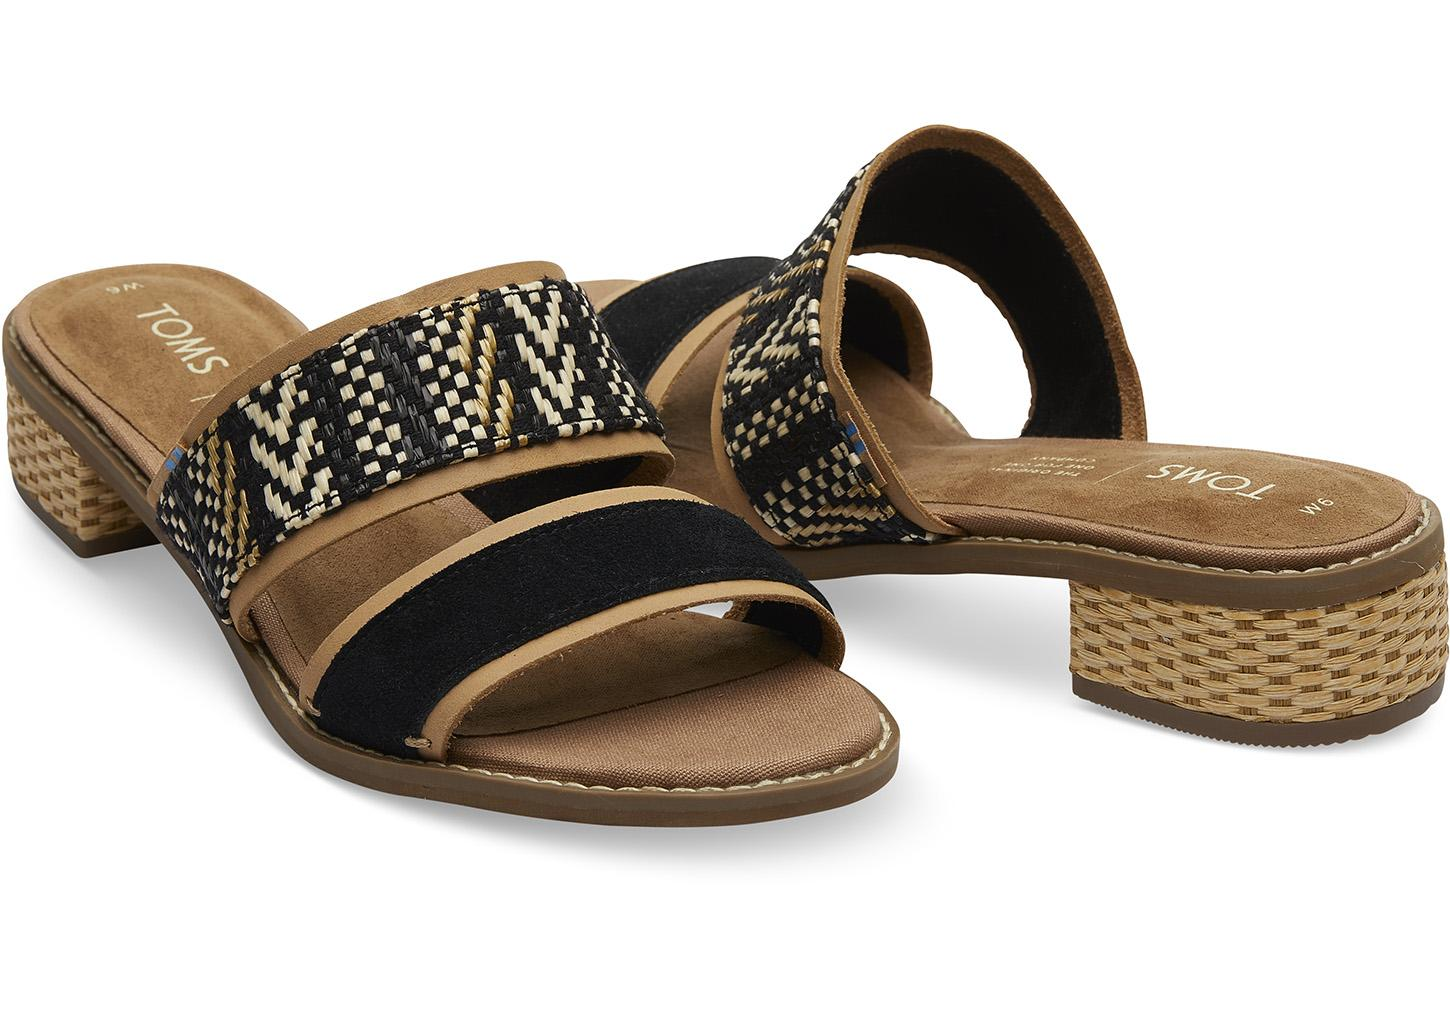 a499e653001 TOMS - Mariposa (black Suede) Women s Sandals - Lyst. View fullscreen